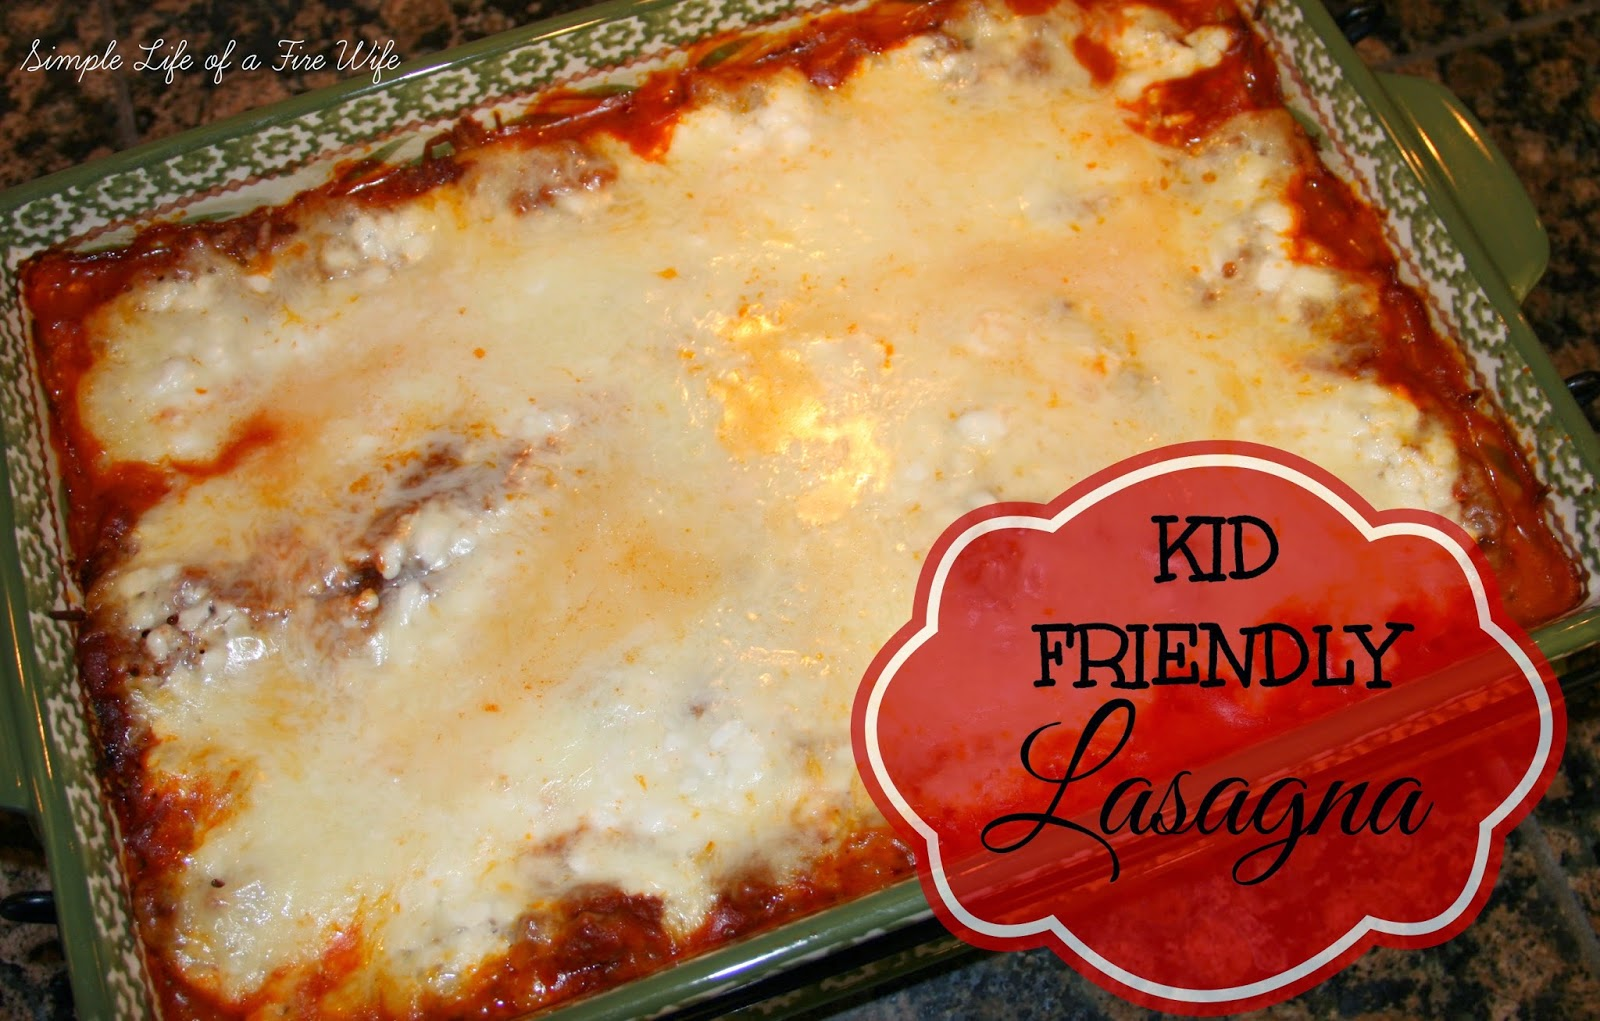 Simple Life Of A Fire Wife Kid Friendly Lasagna